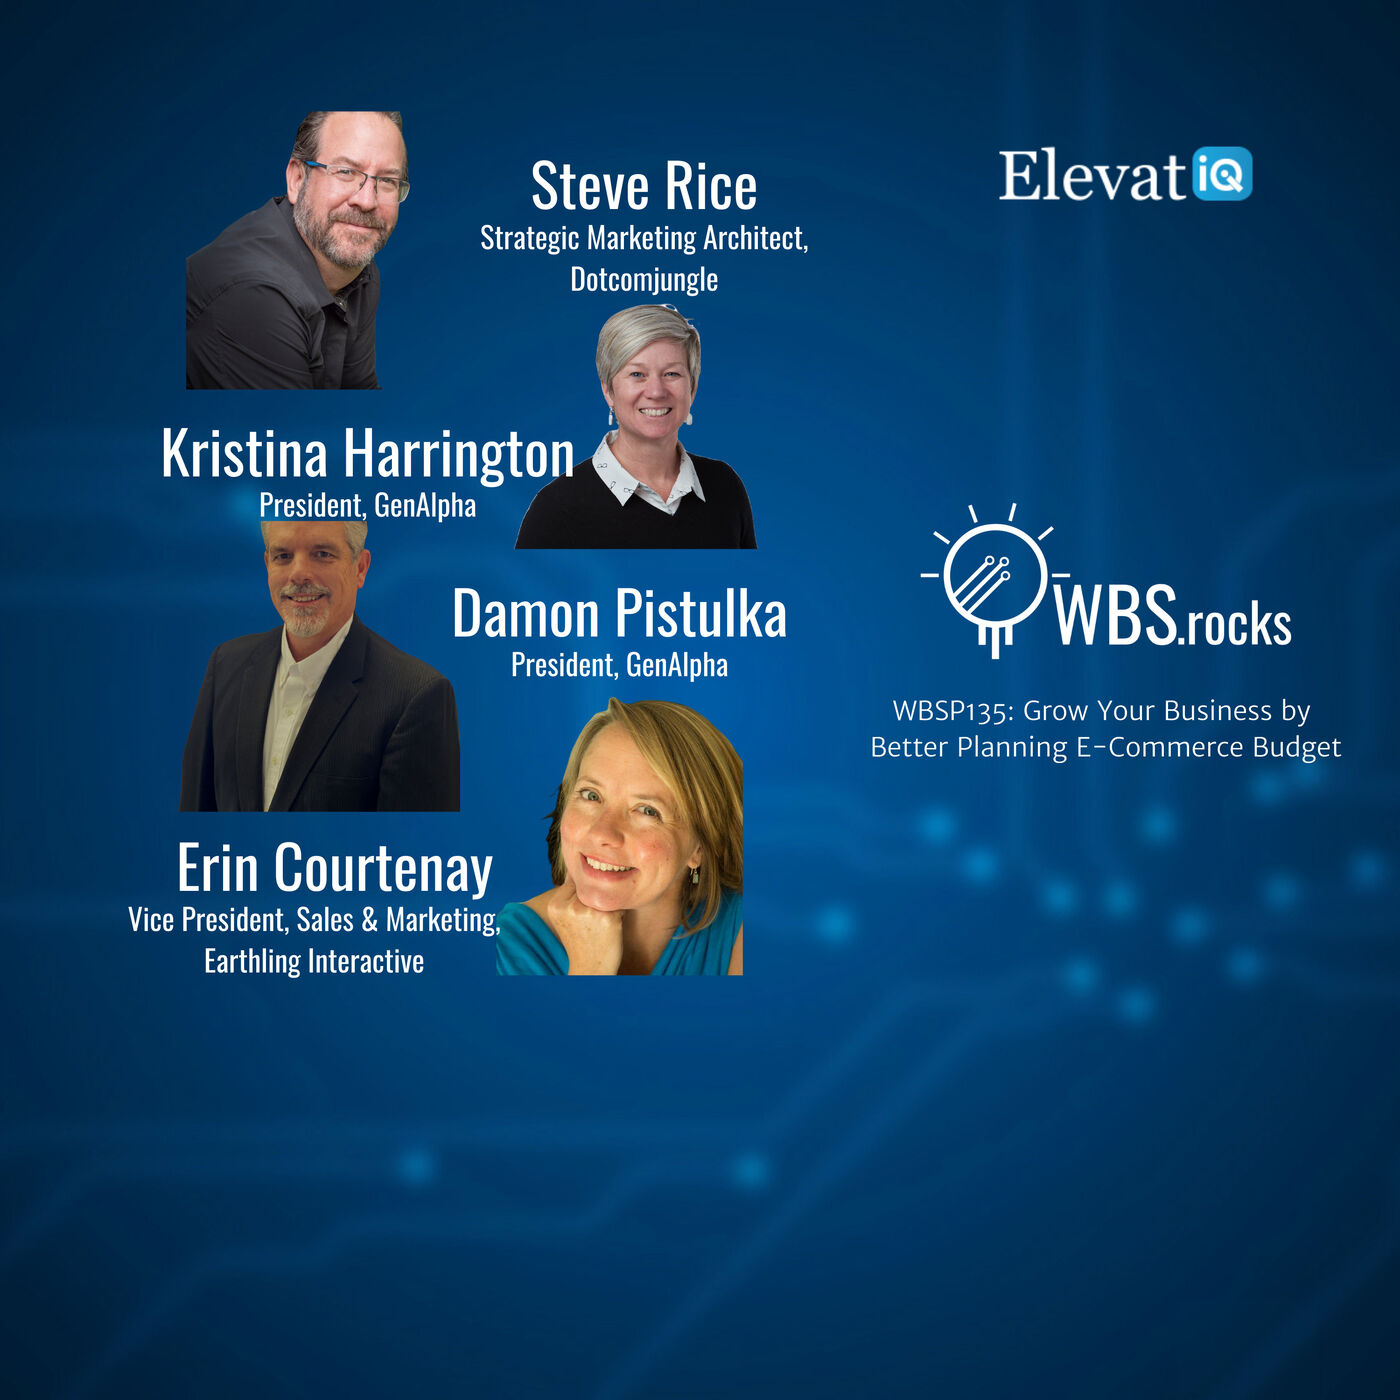 WBSP135: Grow Your Business by Better Planning E-Commerce Budget, a Live Interview w/ a Panel of Experts